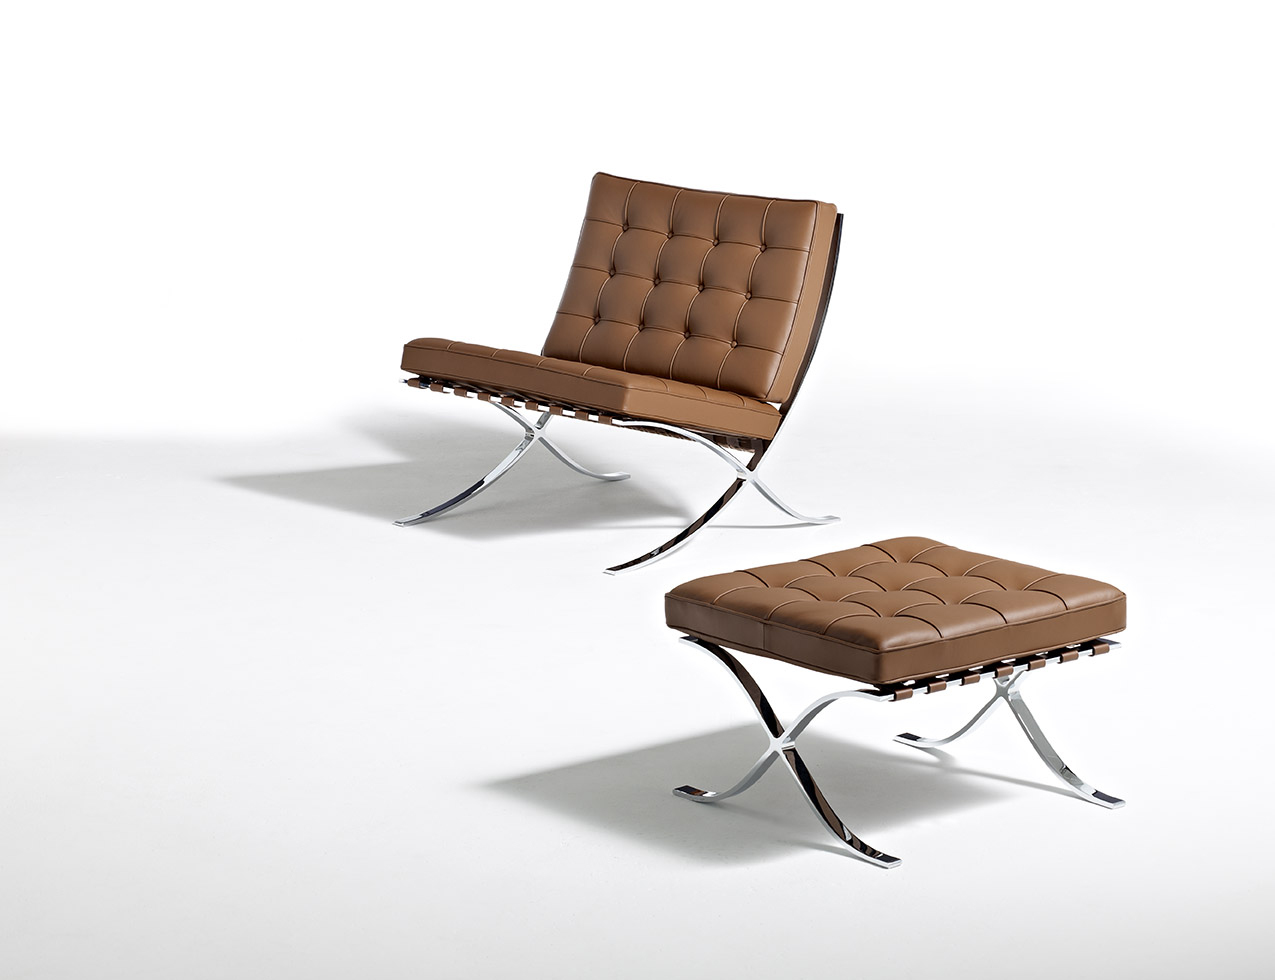 barcelona chair leather folding jysk knoll mies collection van der rohe stool